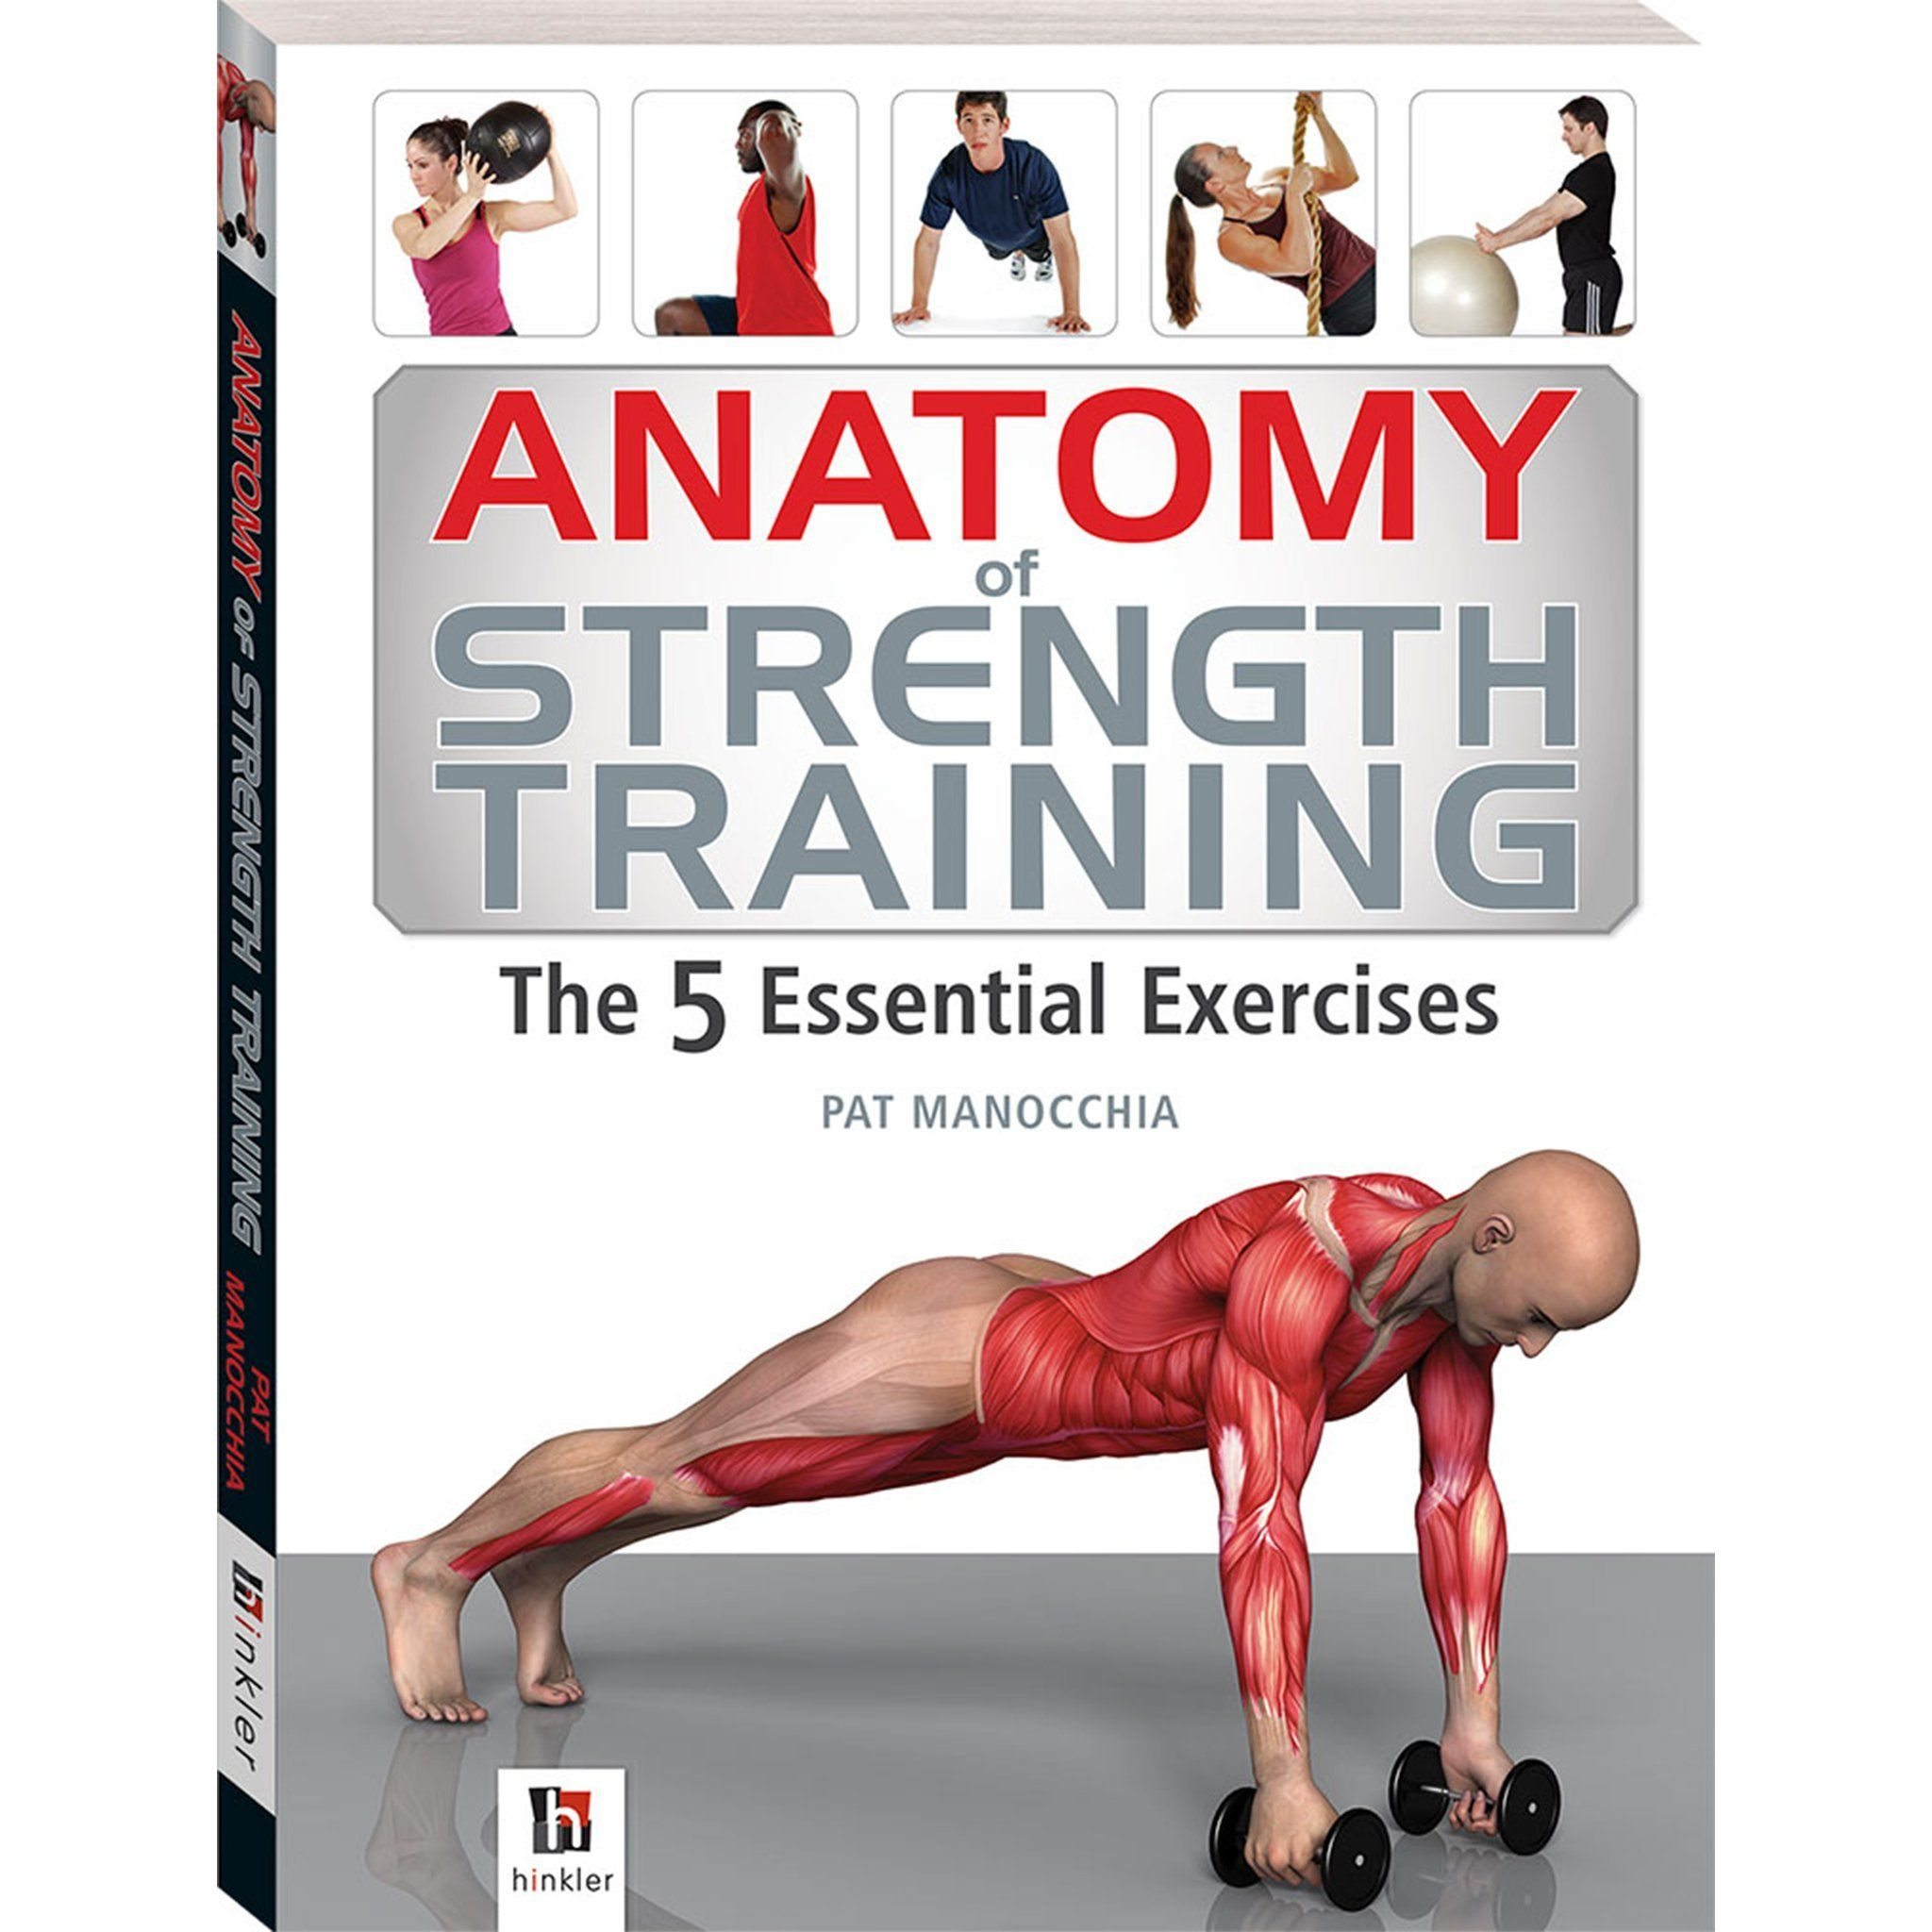 Anatomy of Strength Training - The 5 Essential Exercises Book Books Hinkler Books